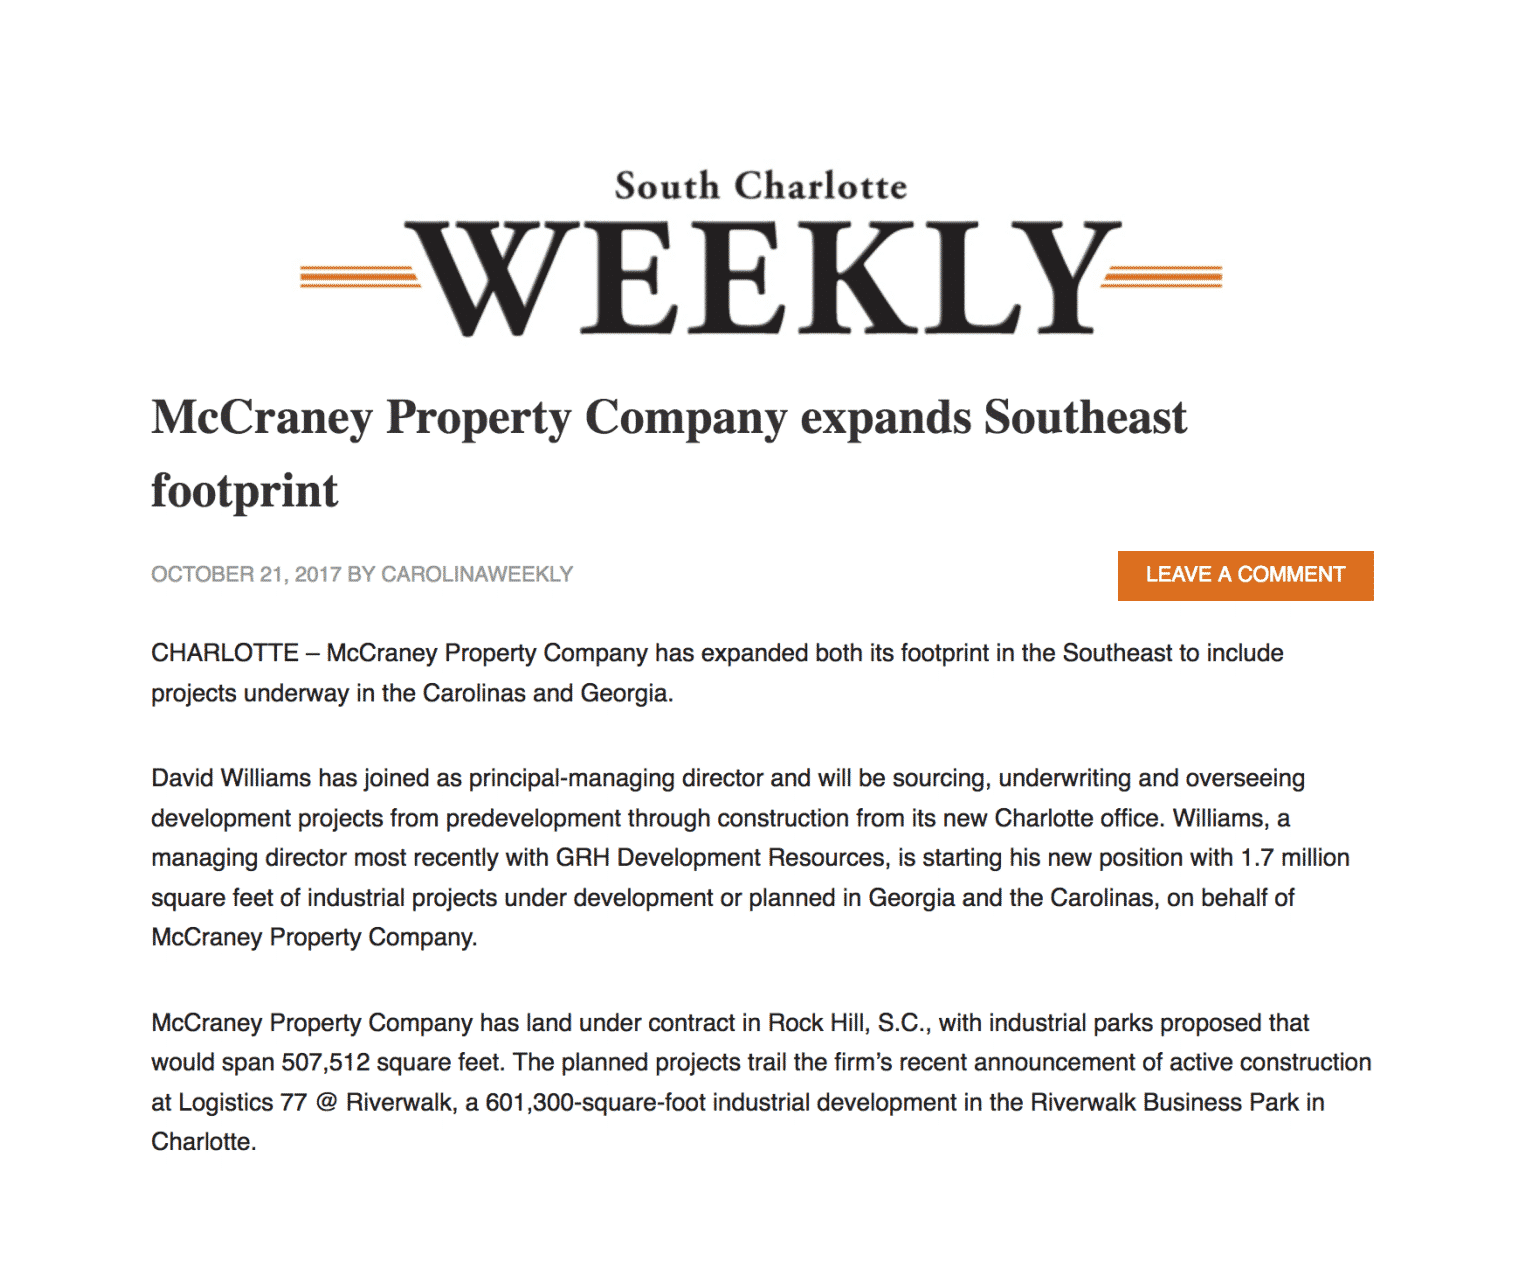 South Charlotte Weekly - MPC expands Southeast footprint, David Williams joins - 10.21.17.1